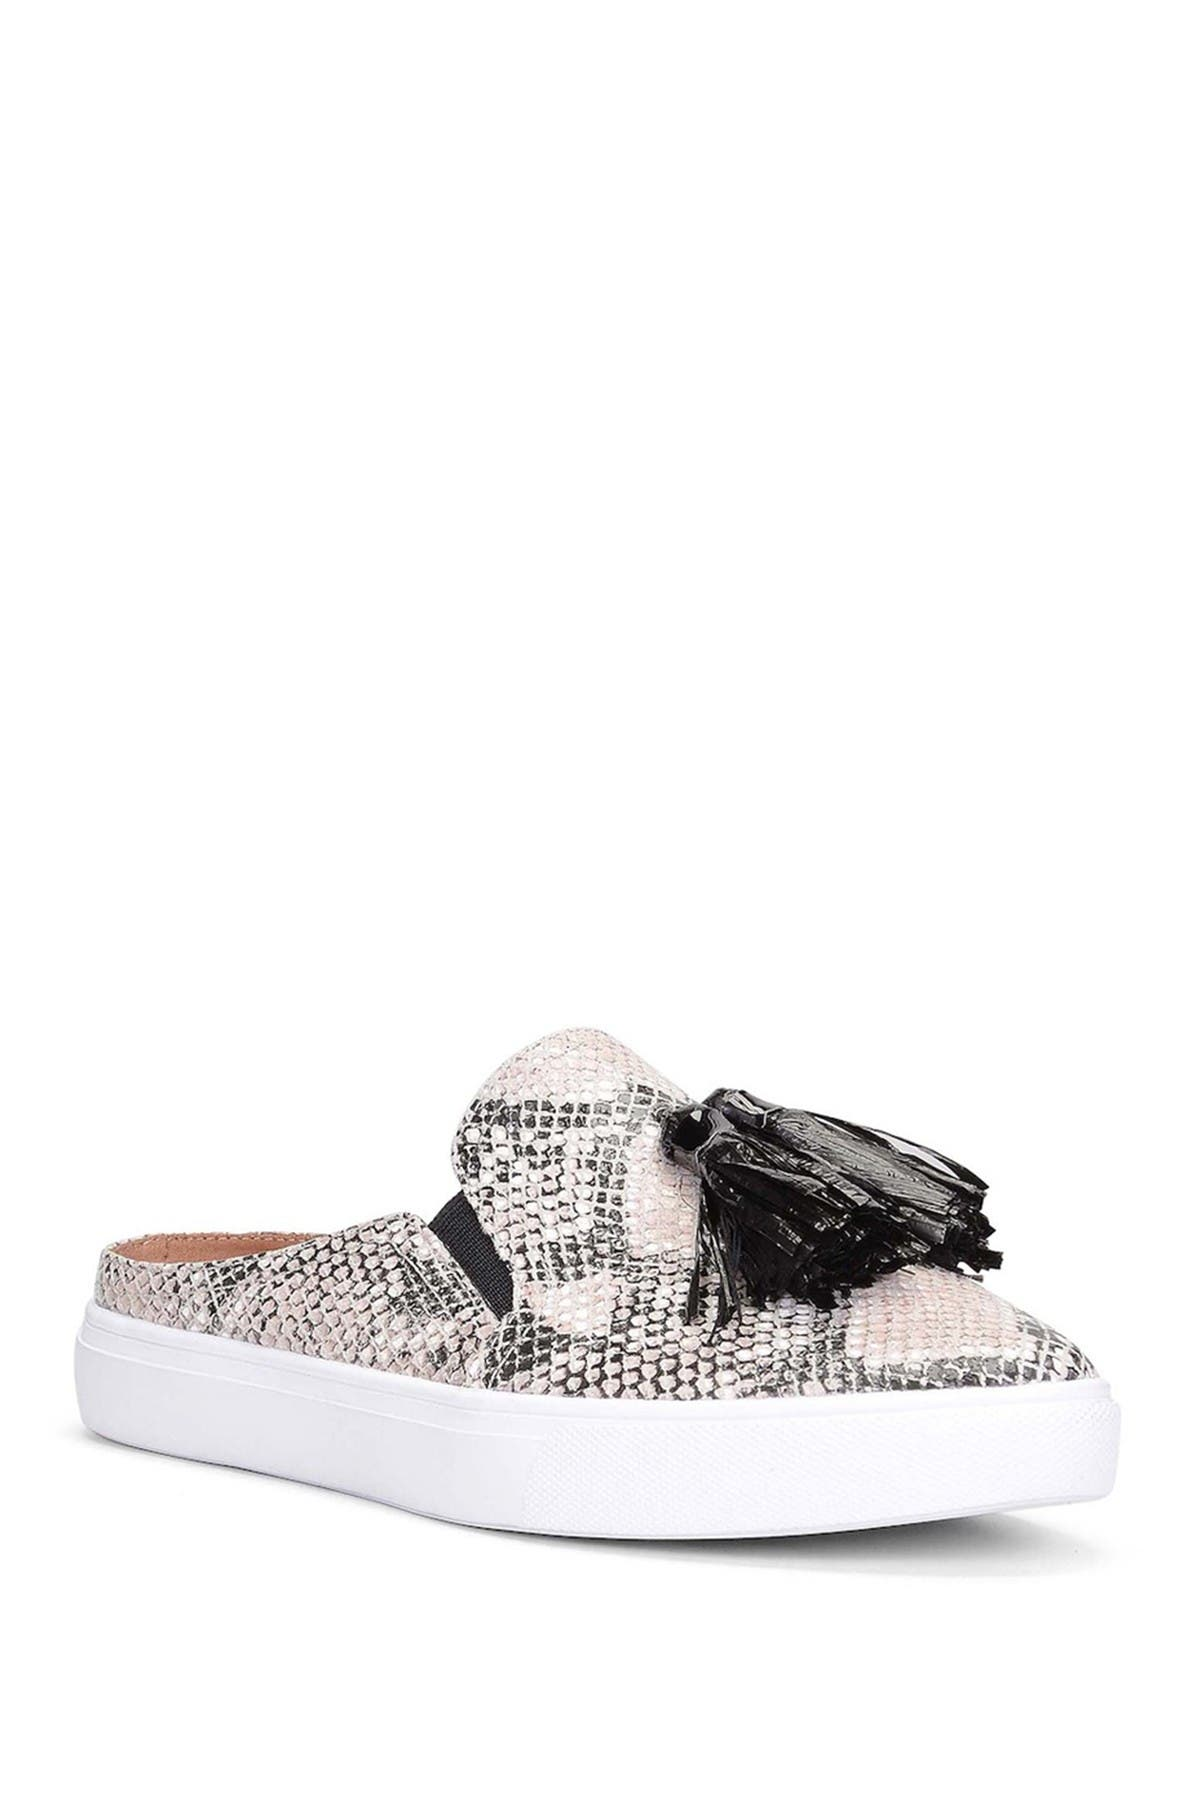 Image of Donald Pliner Pauly Tassel Slip-On Mule